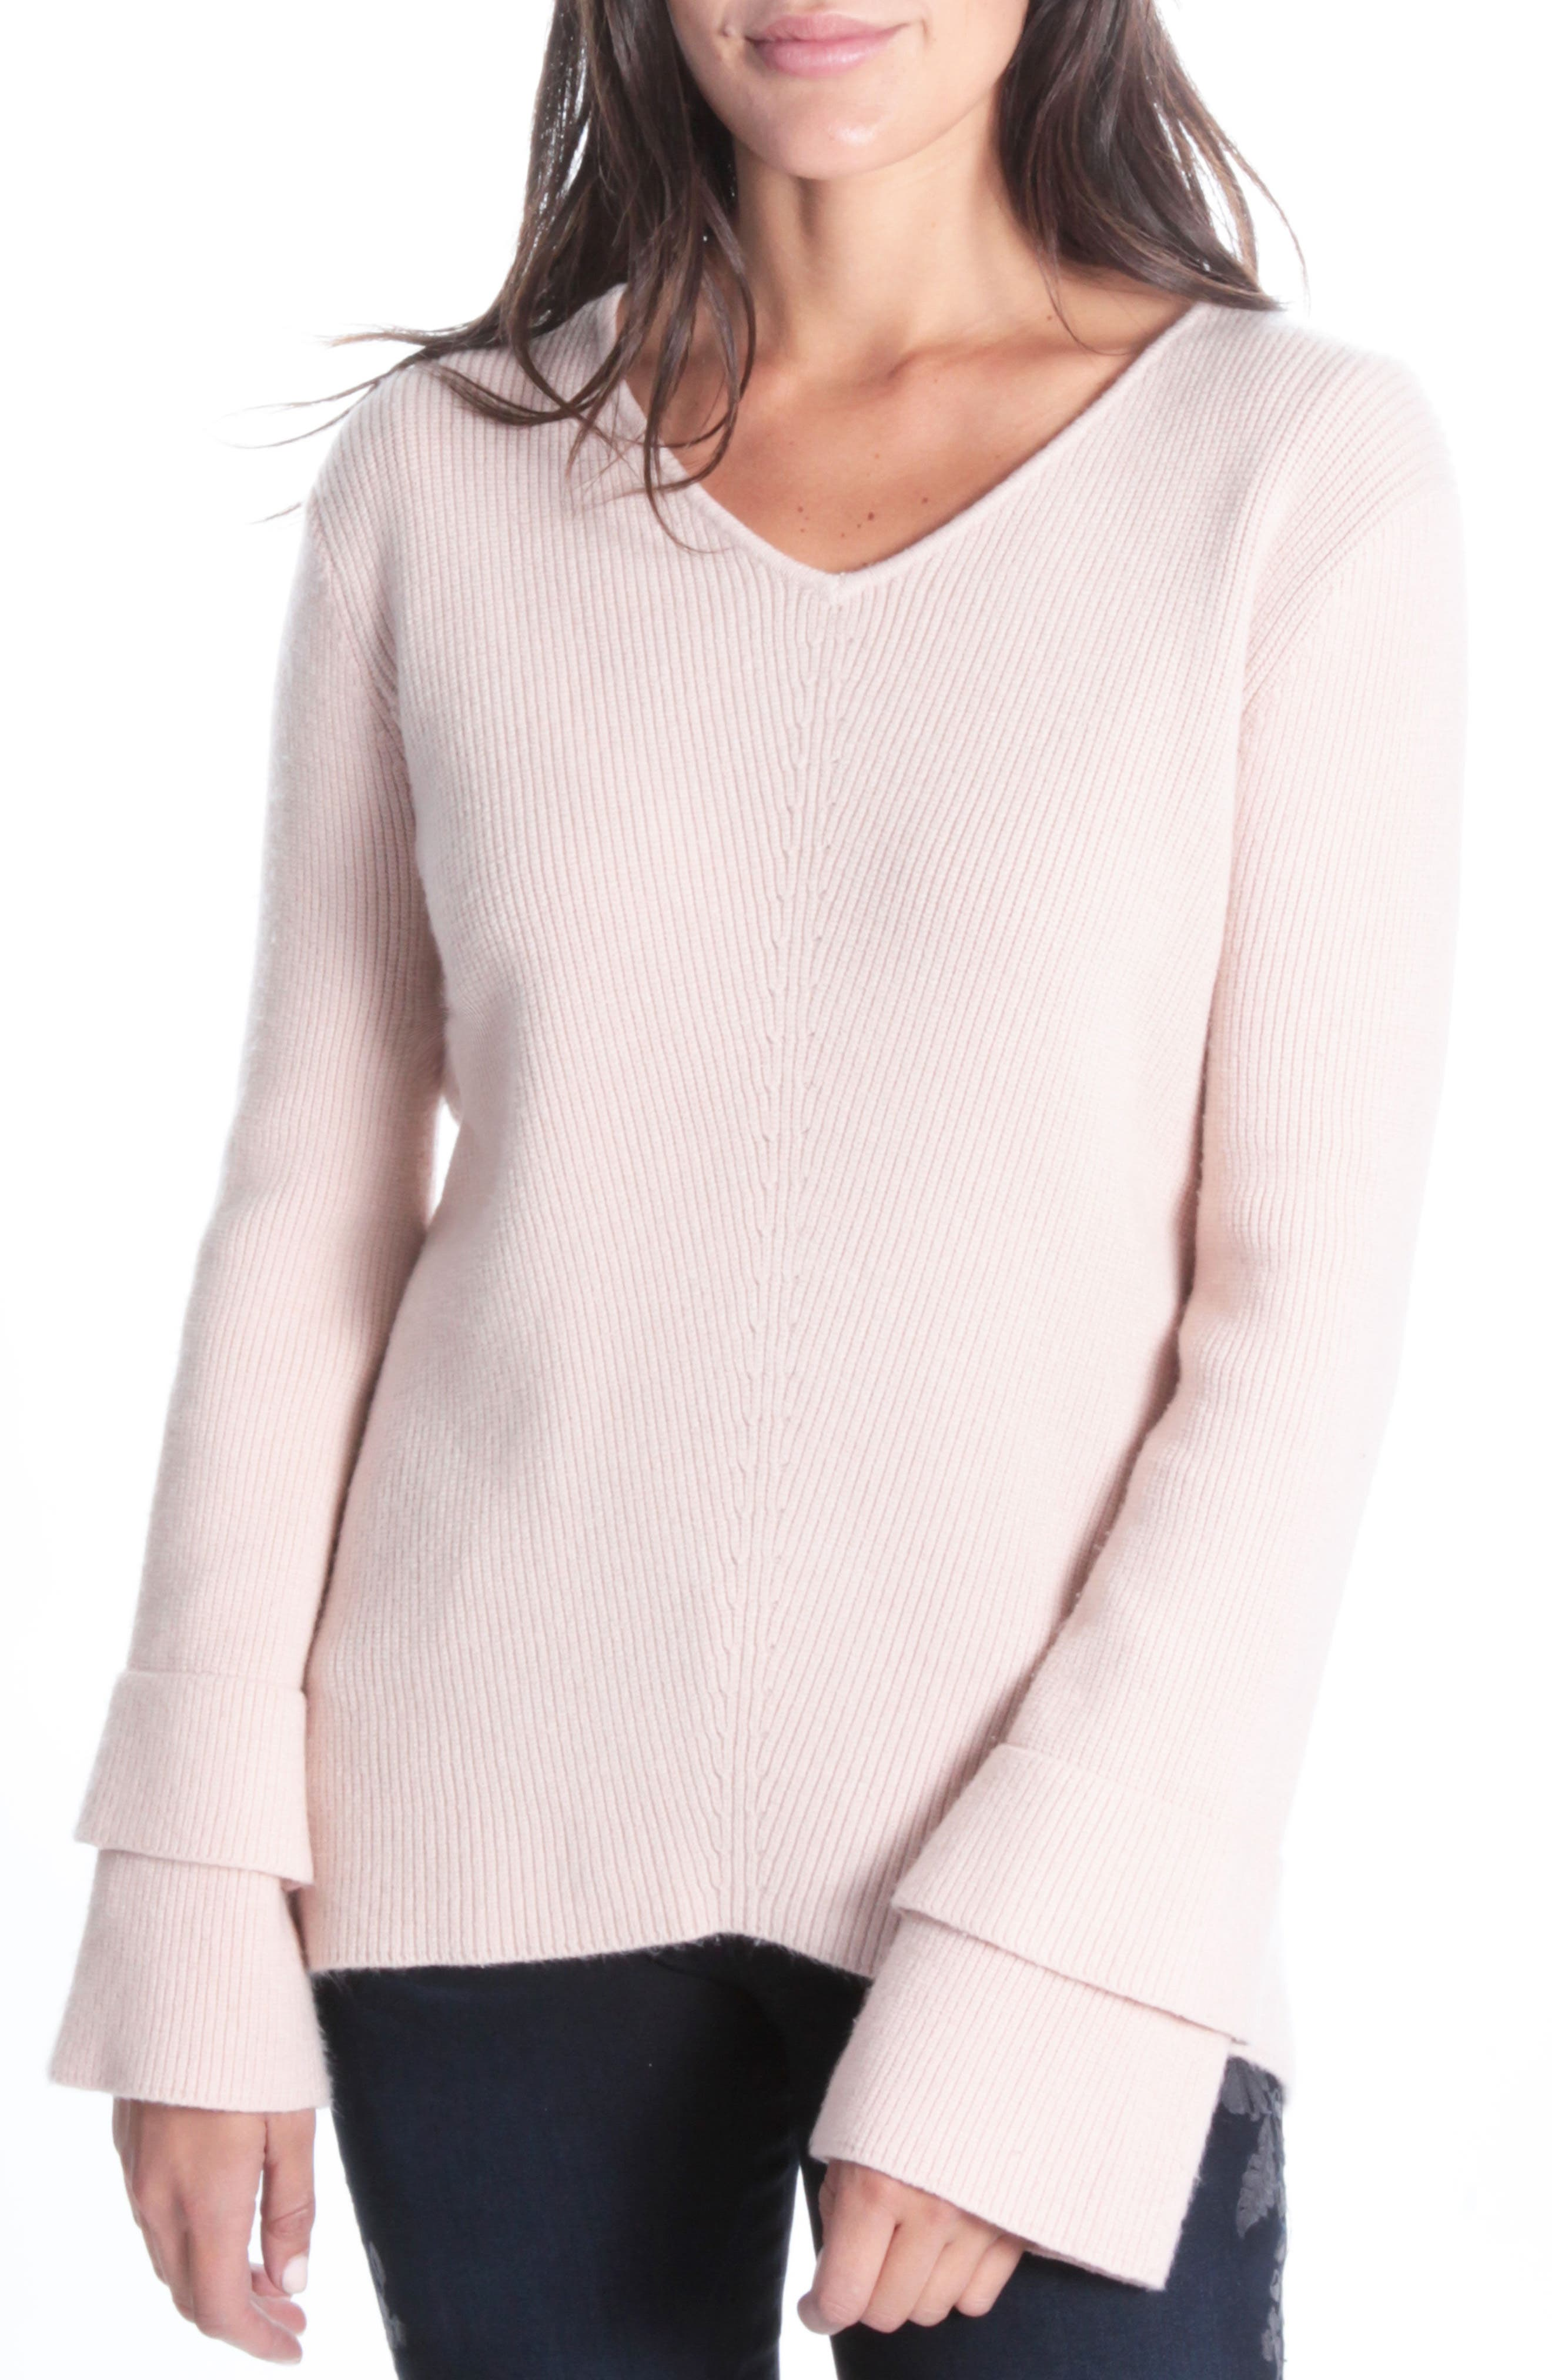 Kut from the Kloth Dariella V-Neck Bell Cuff Sweater